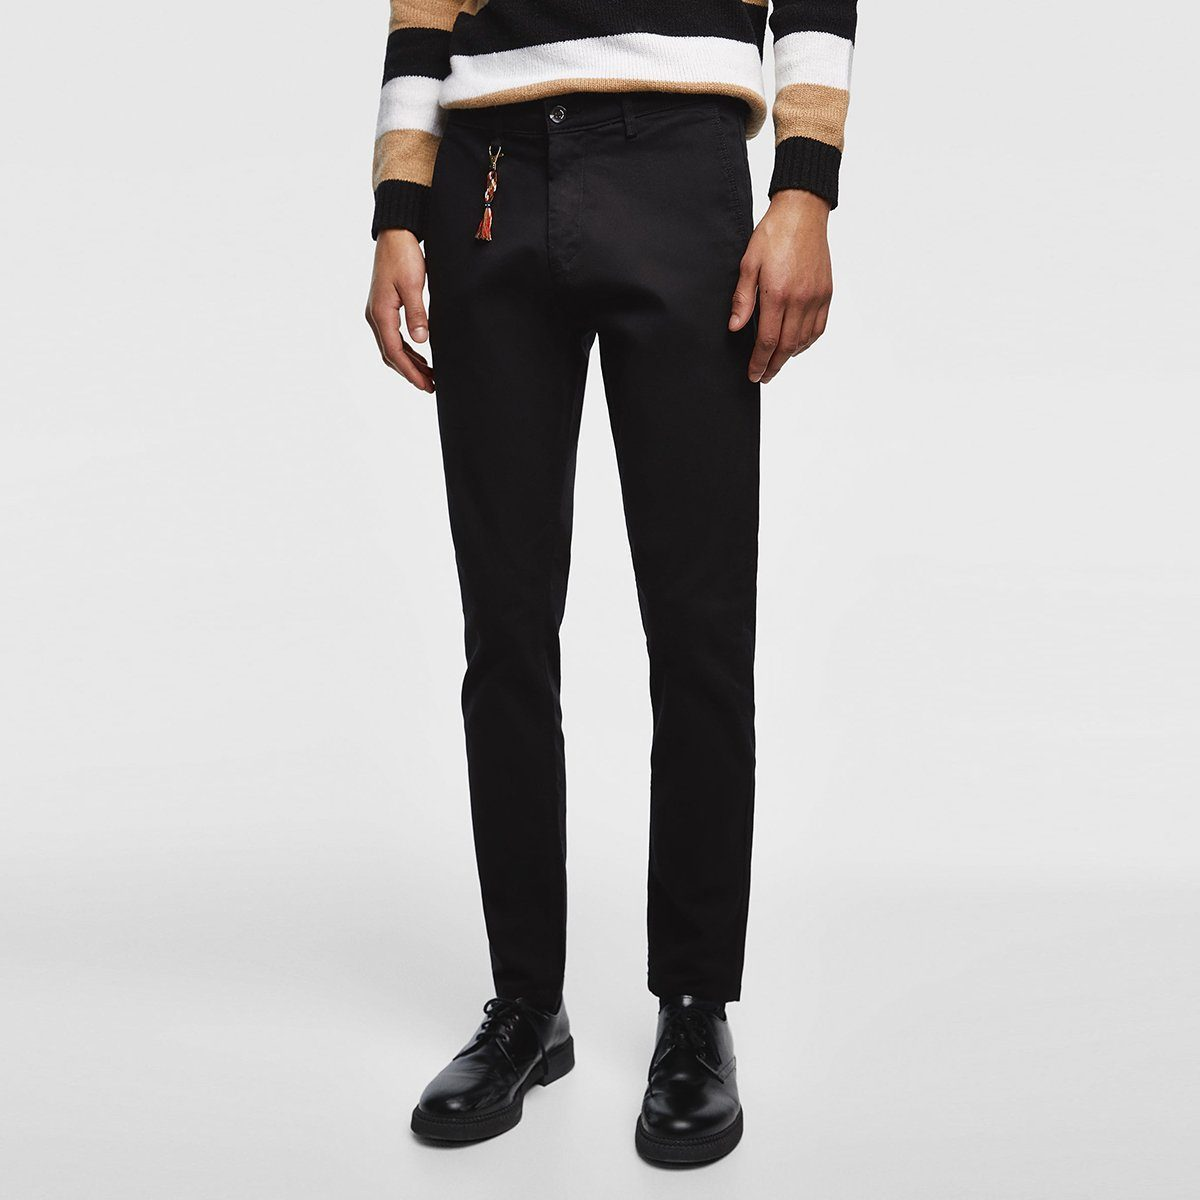 ZARA - Cotton Chino 'skinny fit' Basic Collection (Black)